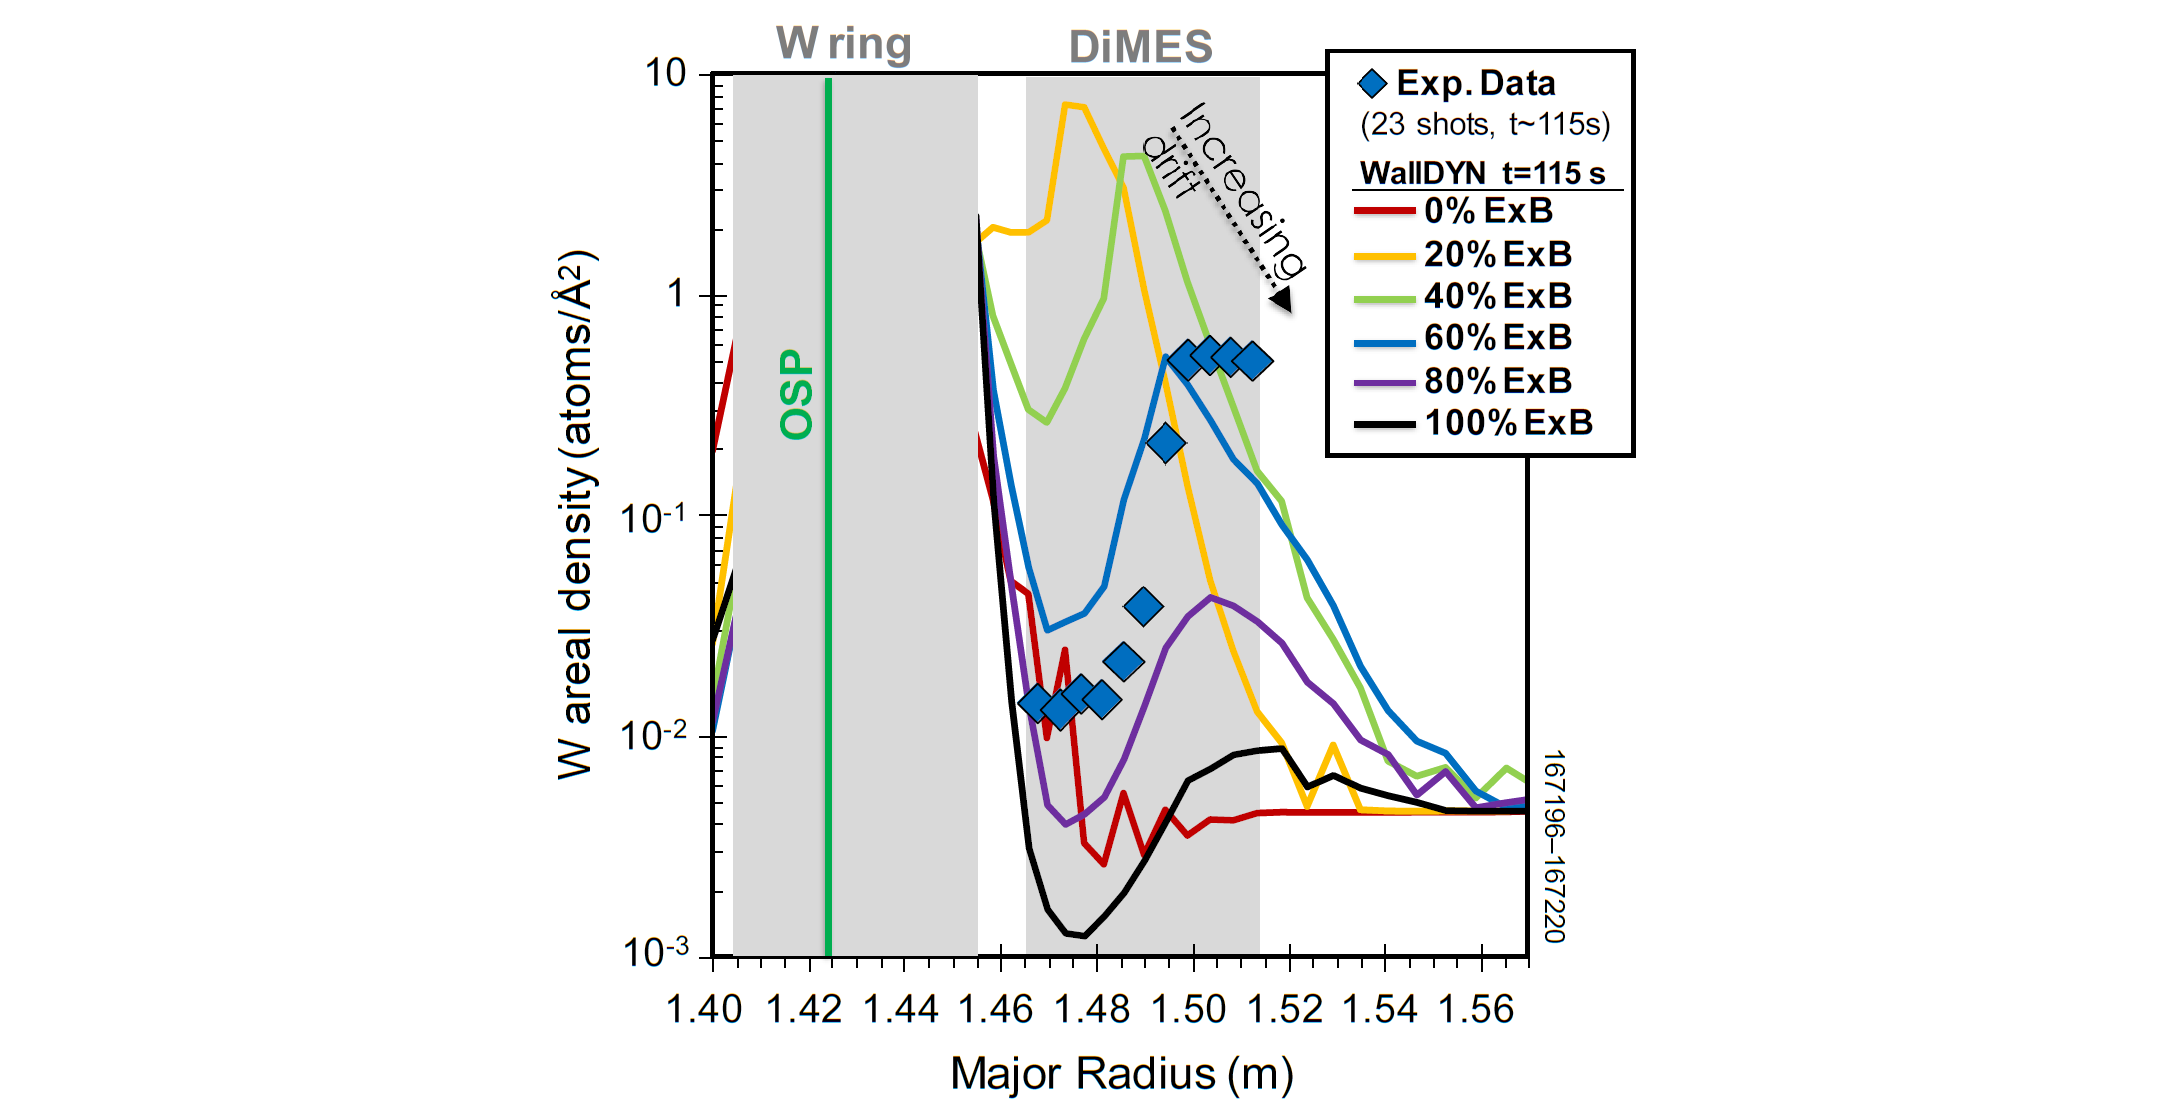 Experimentally observed re-deposition profile (symbols) of W on C after a series of repeat discharges in which toroidally symmetric rows of W-coated tiles were installed in the lower divertor of DIII-D$^6$. WallDYN simulation results using different magnitudes of the E×B drift are overlaid.